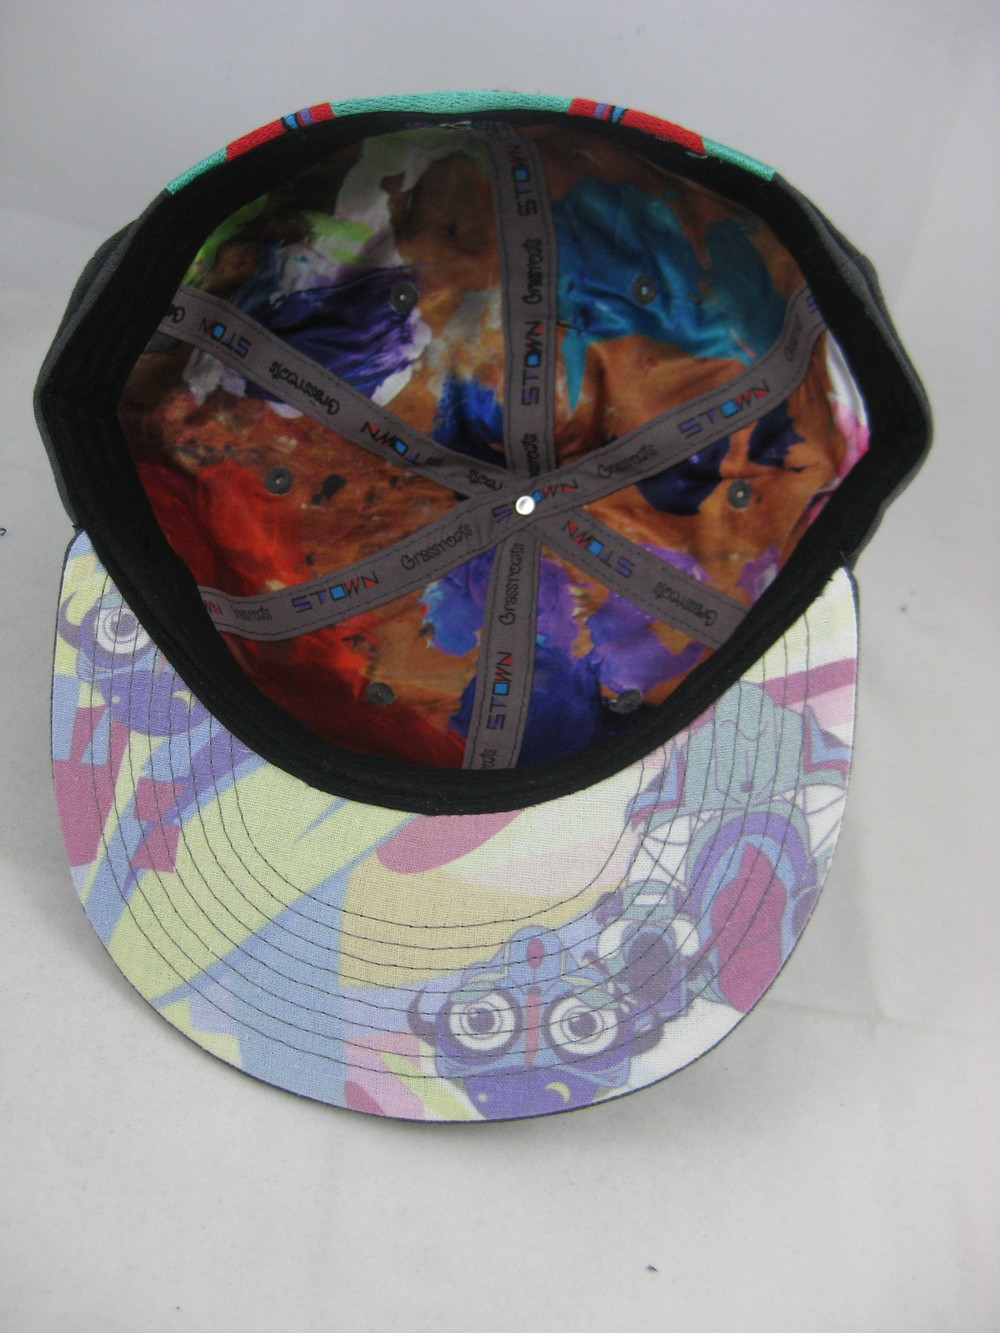 All four hats have satin lining featuring a picture of Spencer Tyler's pallet of colors he paints with as the inner graphic. The under-brim has a soft pastel colored look that complements this unique fitted.